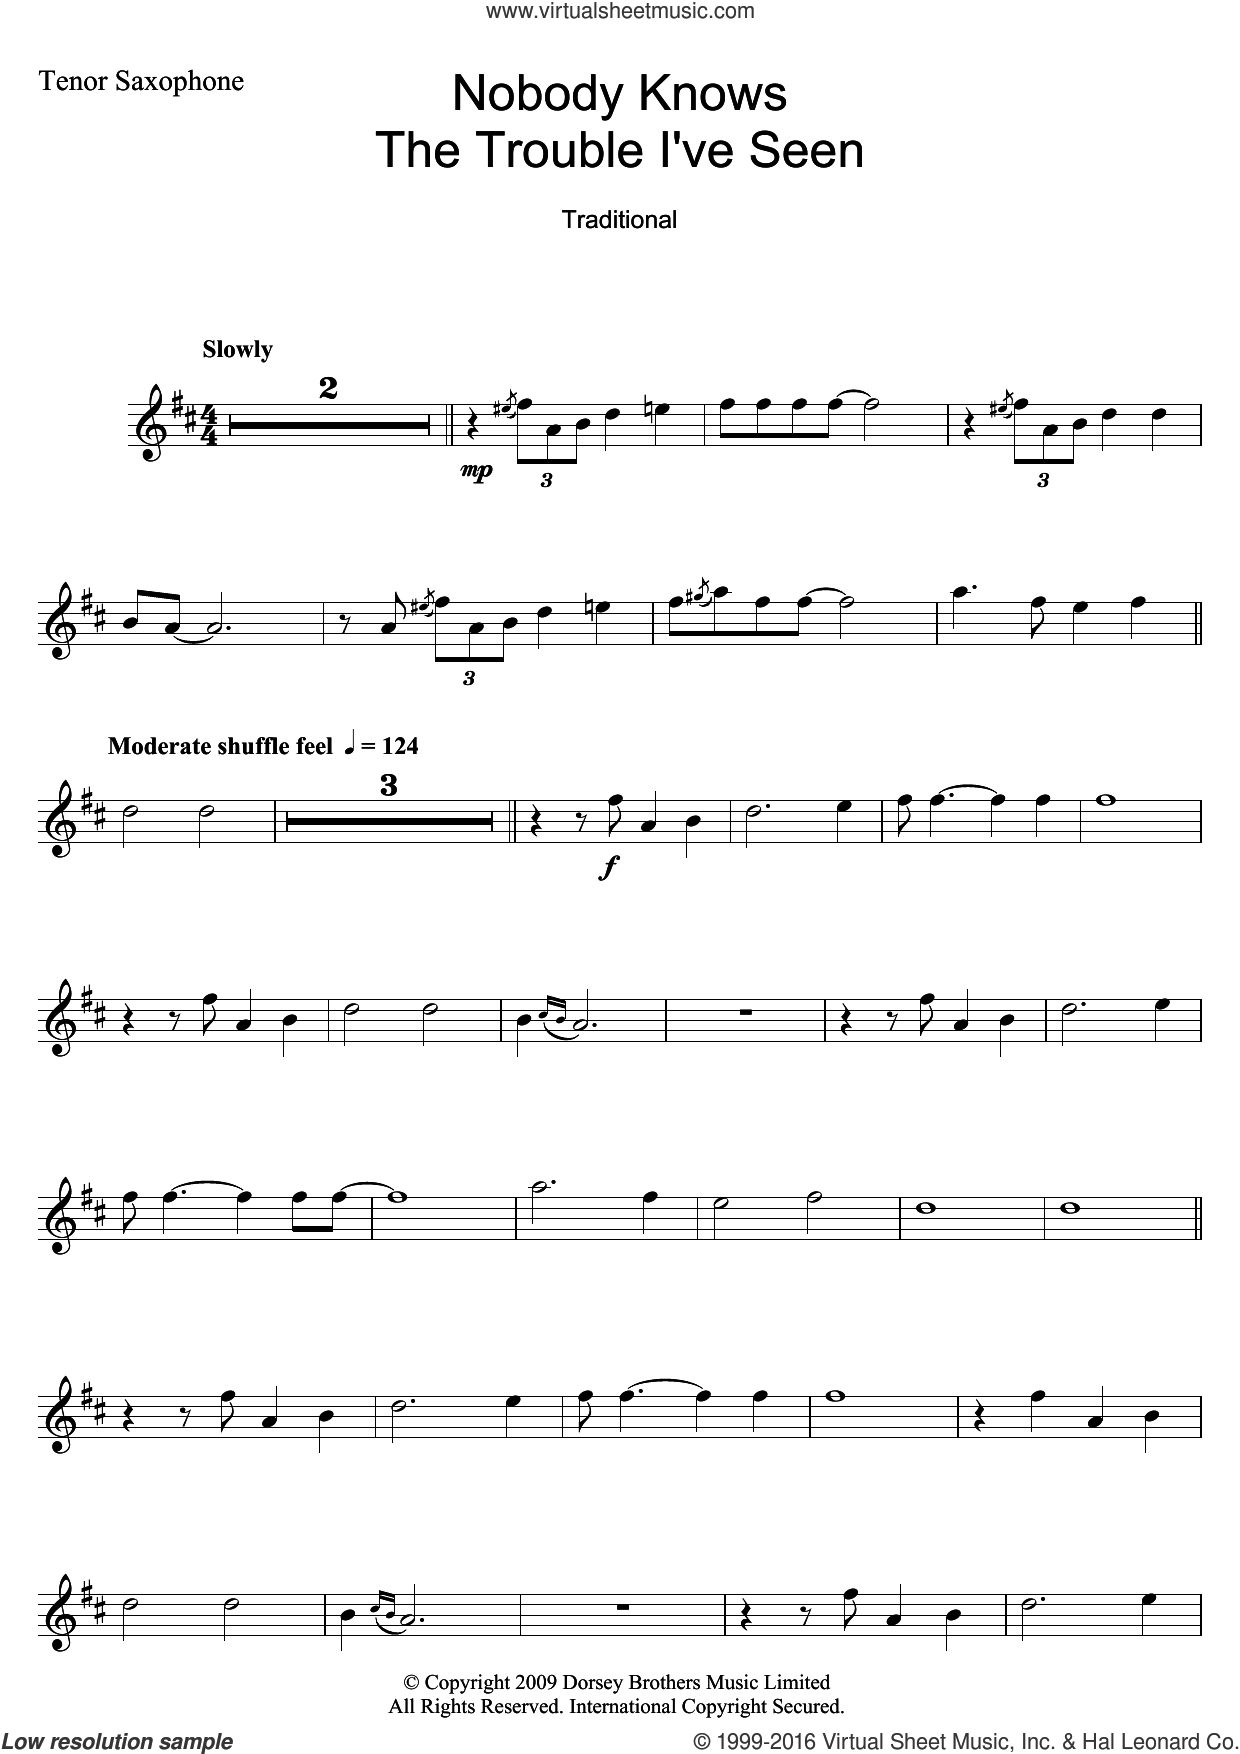 Nobody Knows The Trouble I've Seen sheet music for tenor saxophone solo by Louis Armstrong and Miscellaneous, intermediate skill level